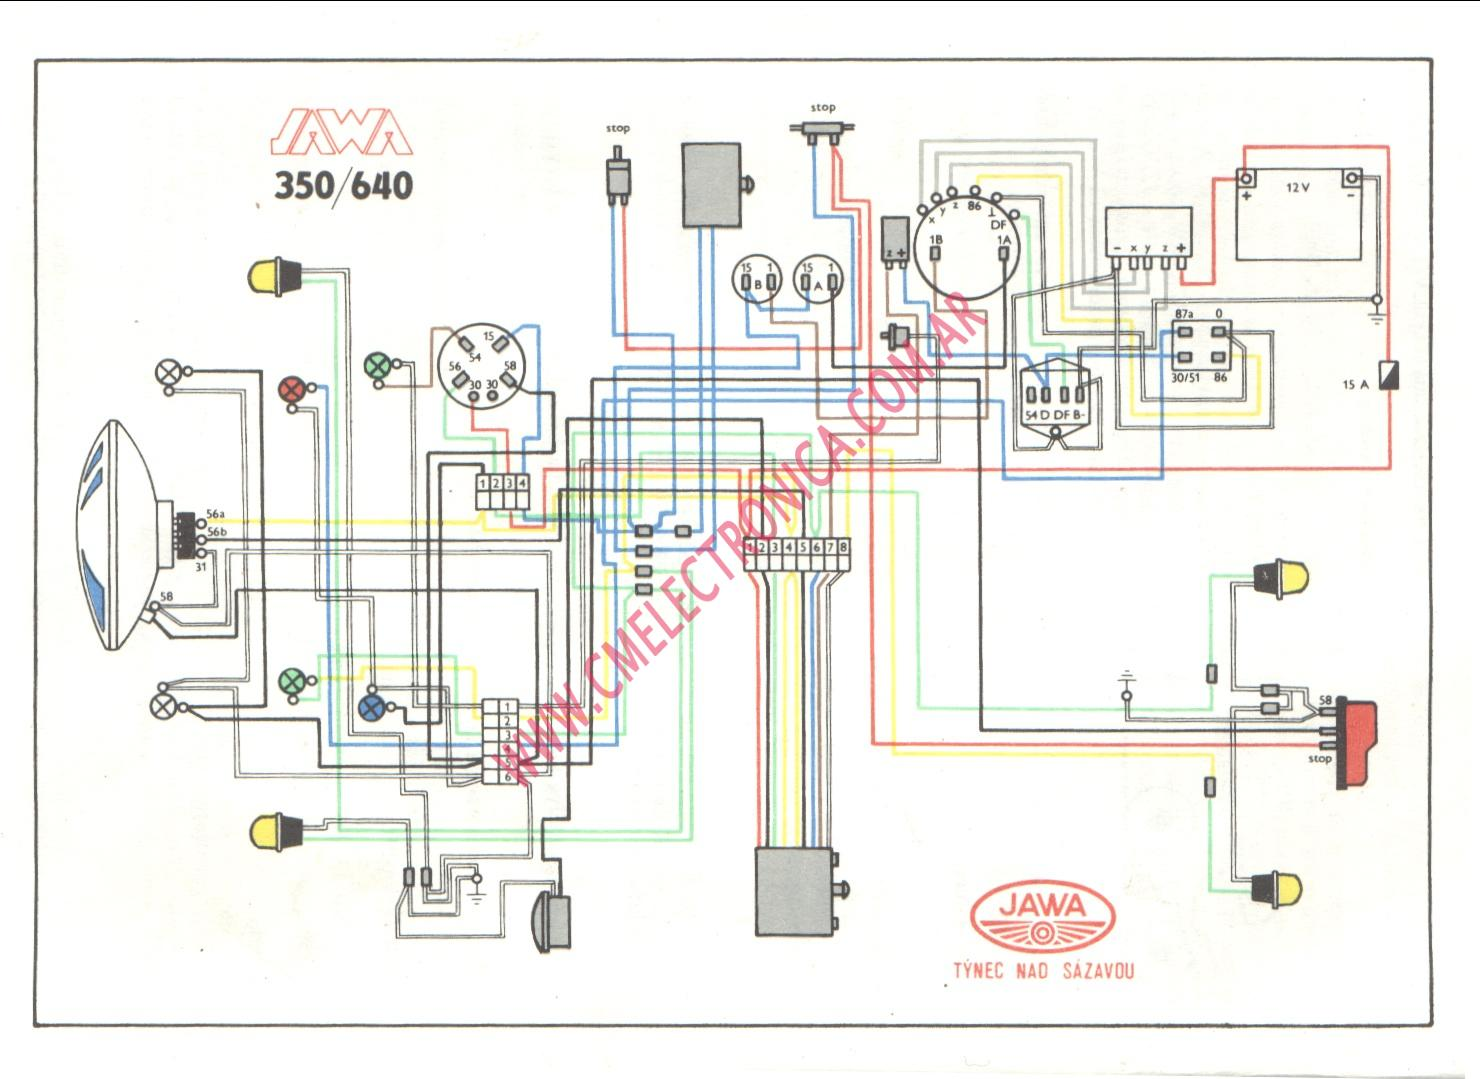 Jawa 350 Wiring Diagram Great Installation Of 96 Engine As Well Harley Sportster Also Diagrama 640 Rh Cmelectronica Com Ar Chevy 1986 C20 Wire Diagrams